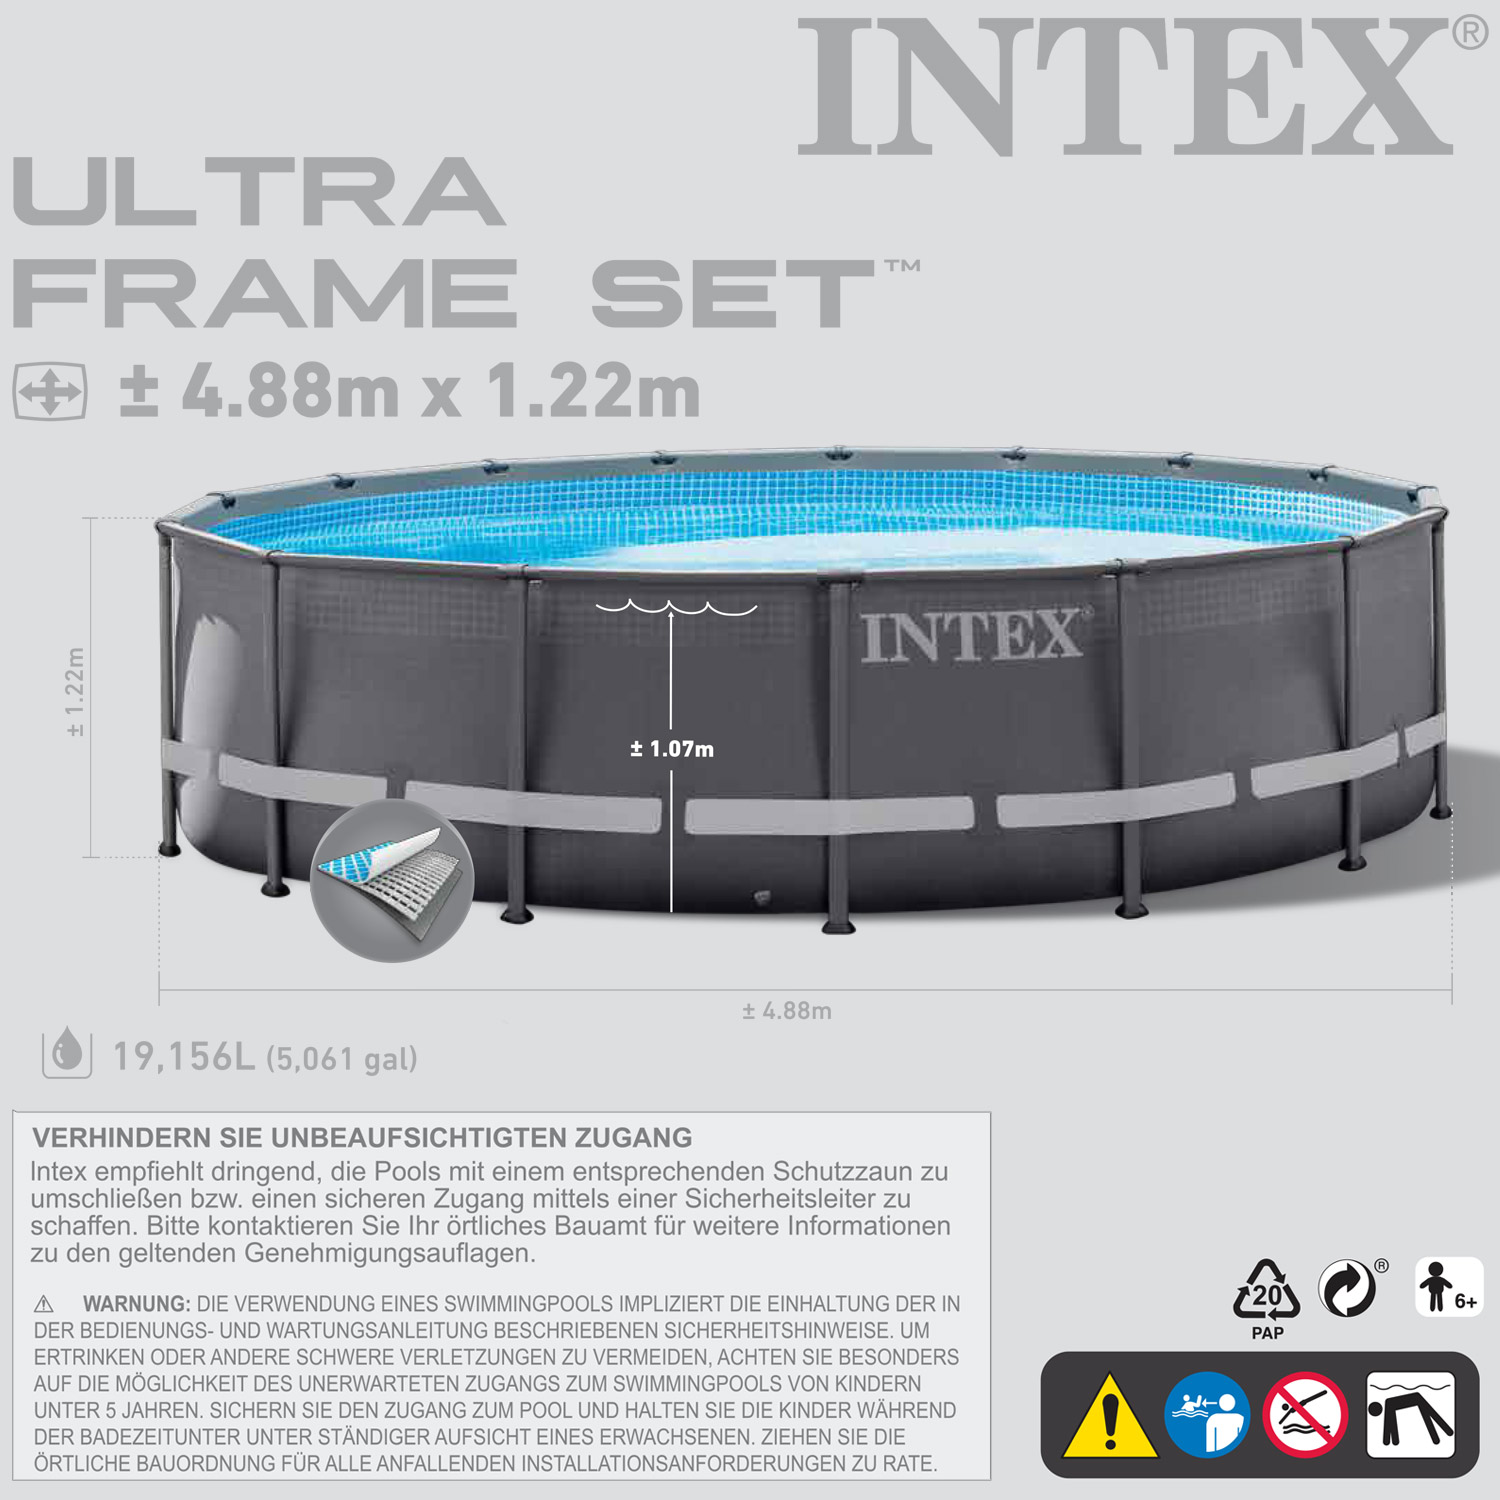 intex 488x122 set schwimmbecken swimming pool schwimmbad stahlwand metallrahmen ebay. Black Bedroom Furniture Sets. Home Design Ideas